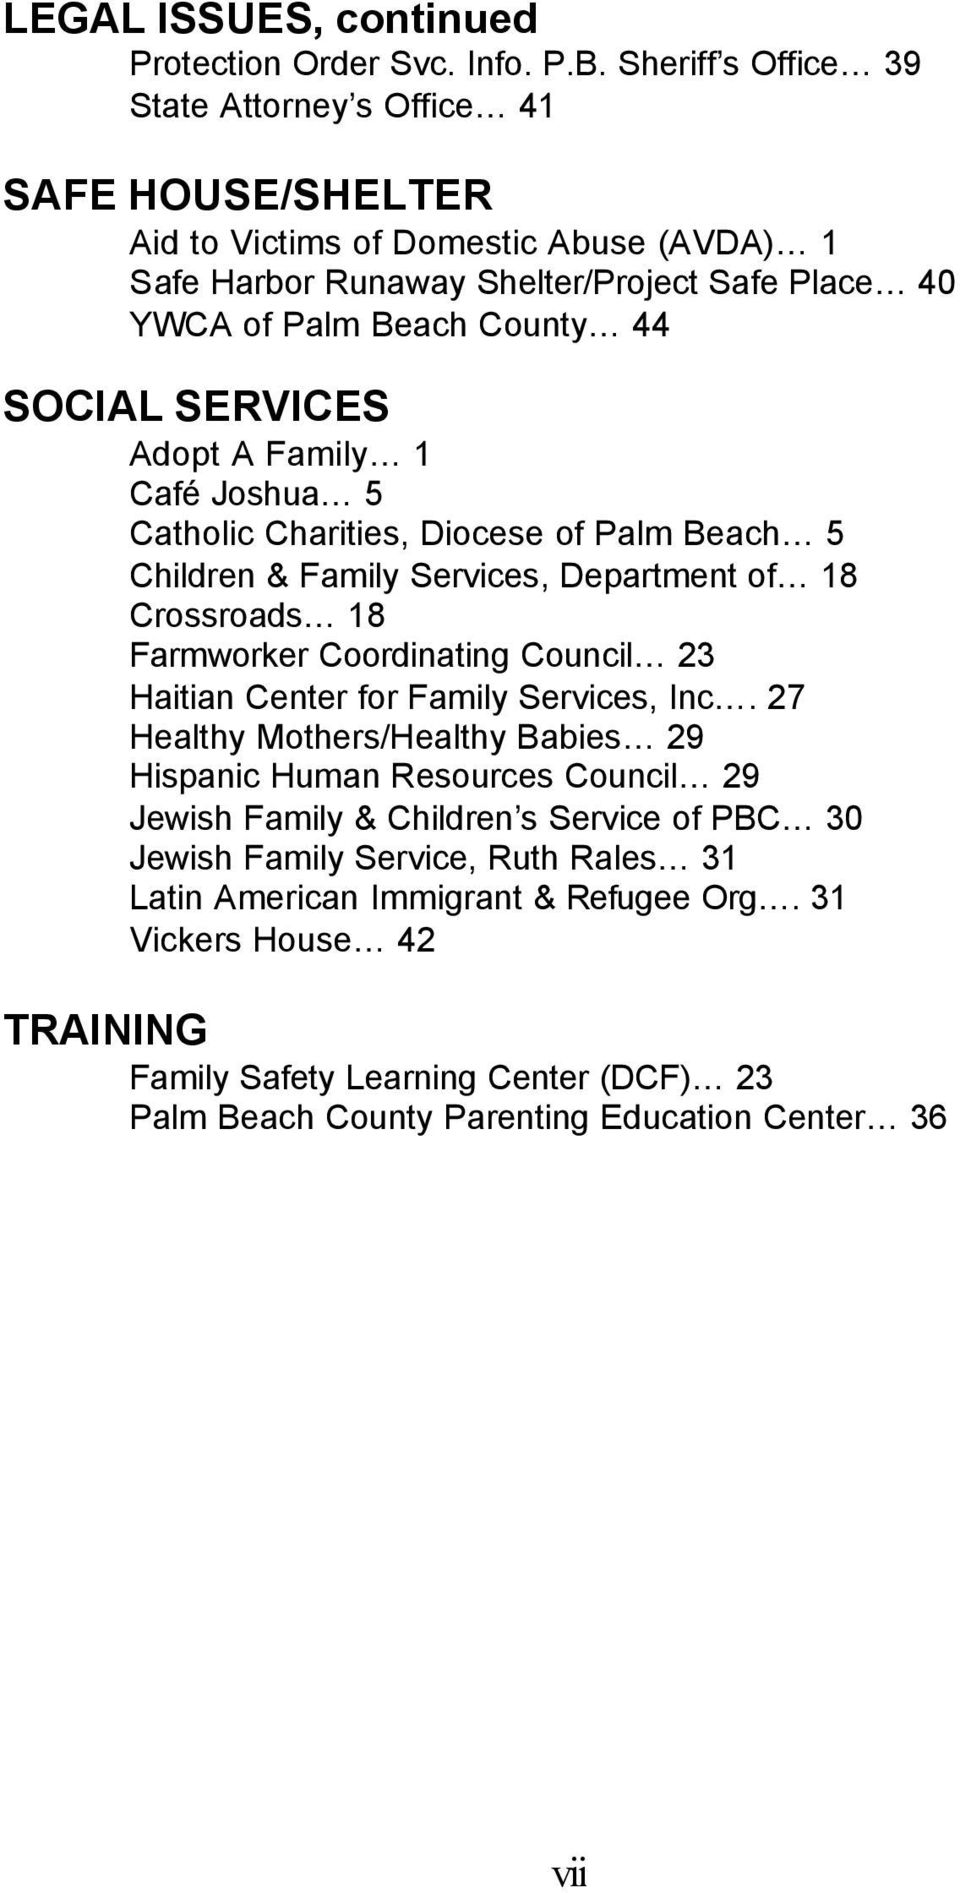 SERVICES Adopt A Family 1 Café Joshua 5 Catholic Charities, Diocese of Palm Beach 5 Children & Family Services, Department of 18 Crossroads 18 Farmworker Coordinating Council 23 Haitian Center